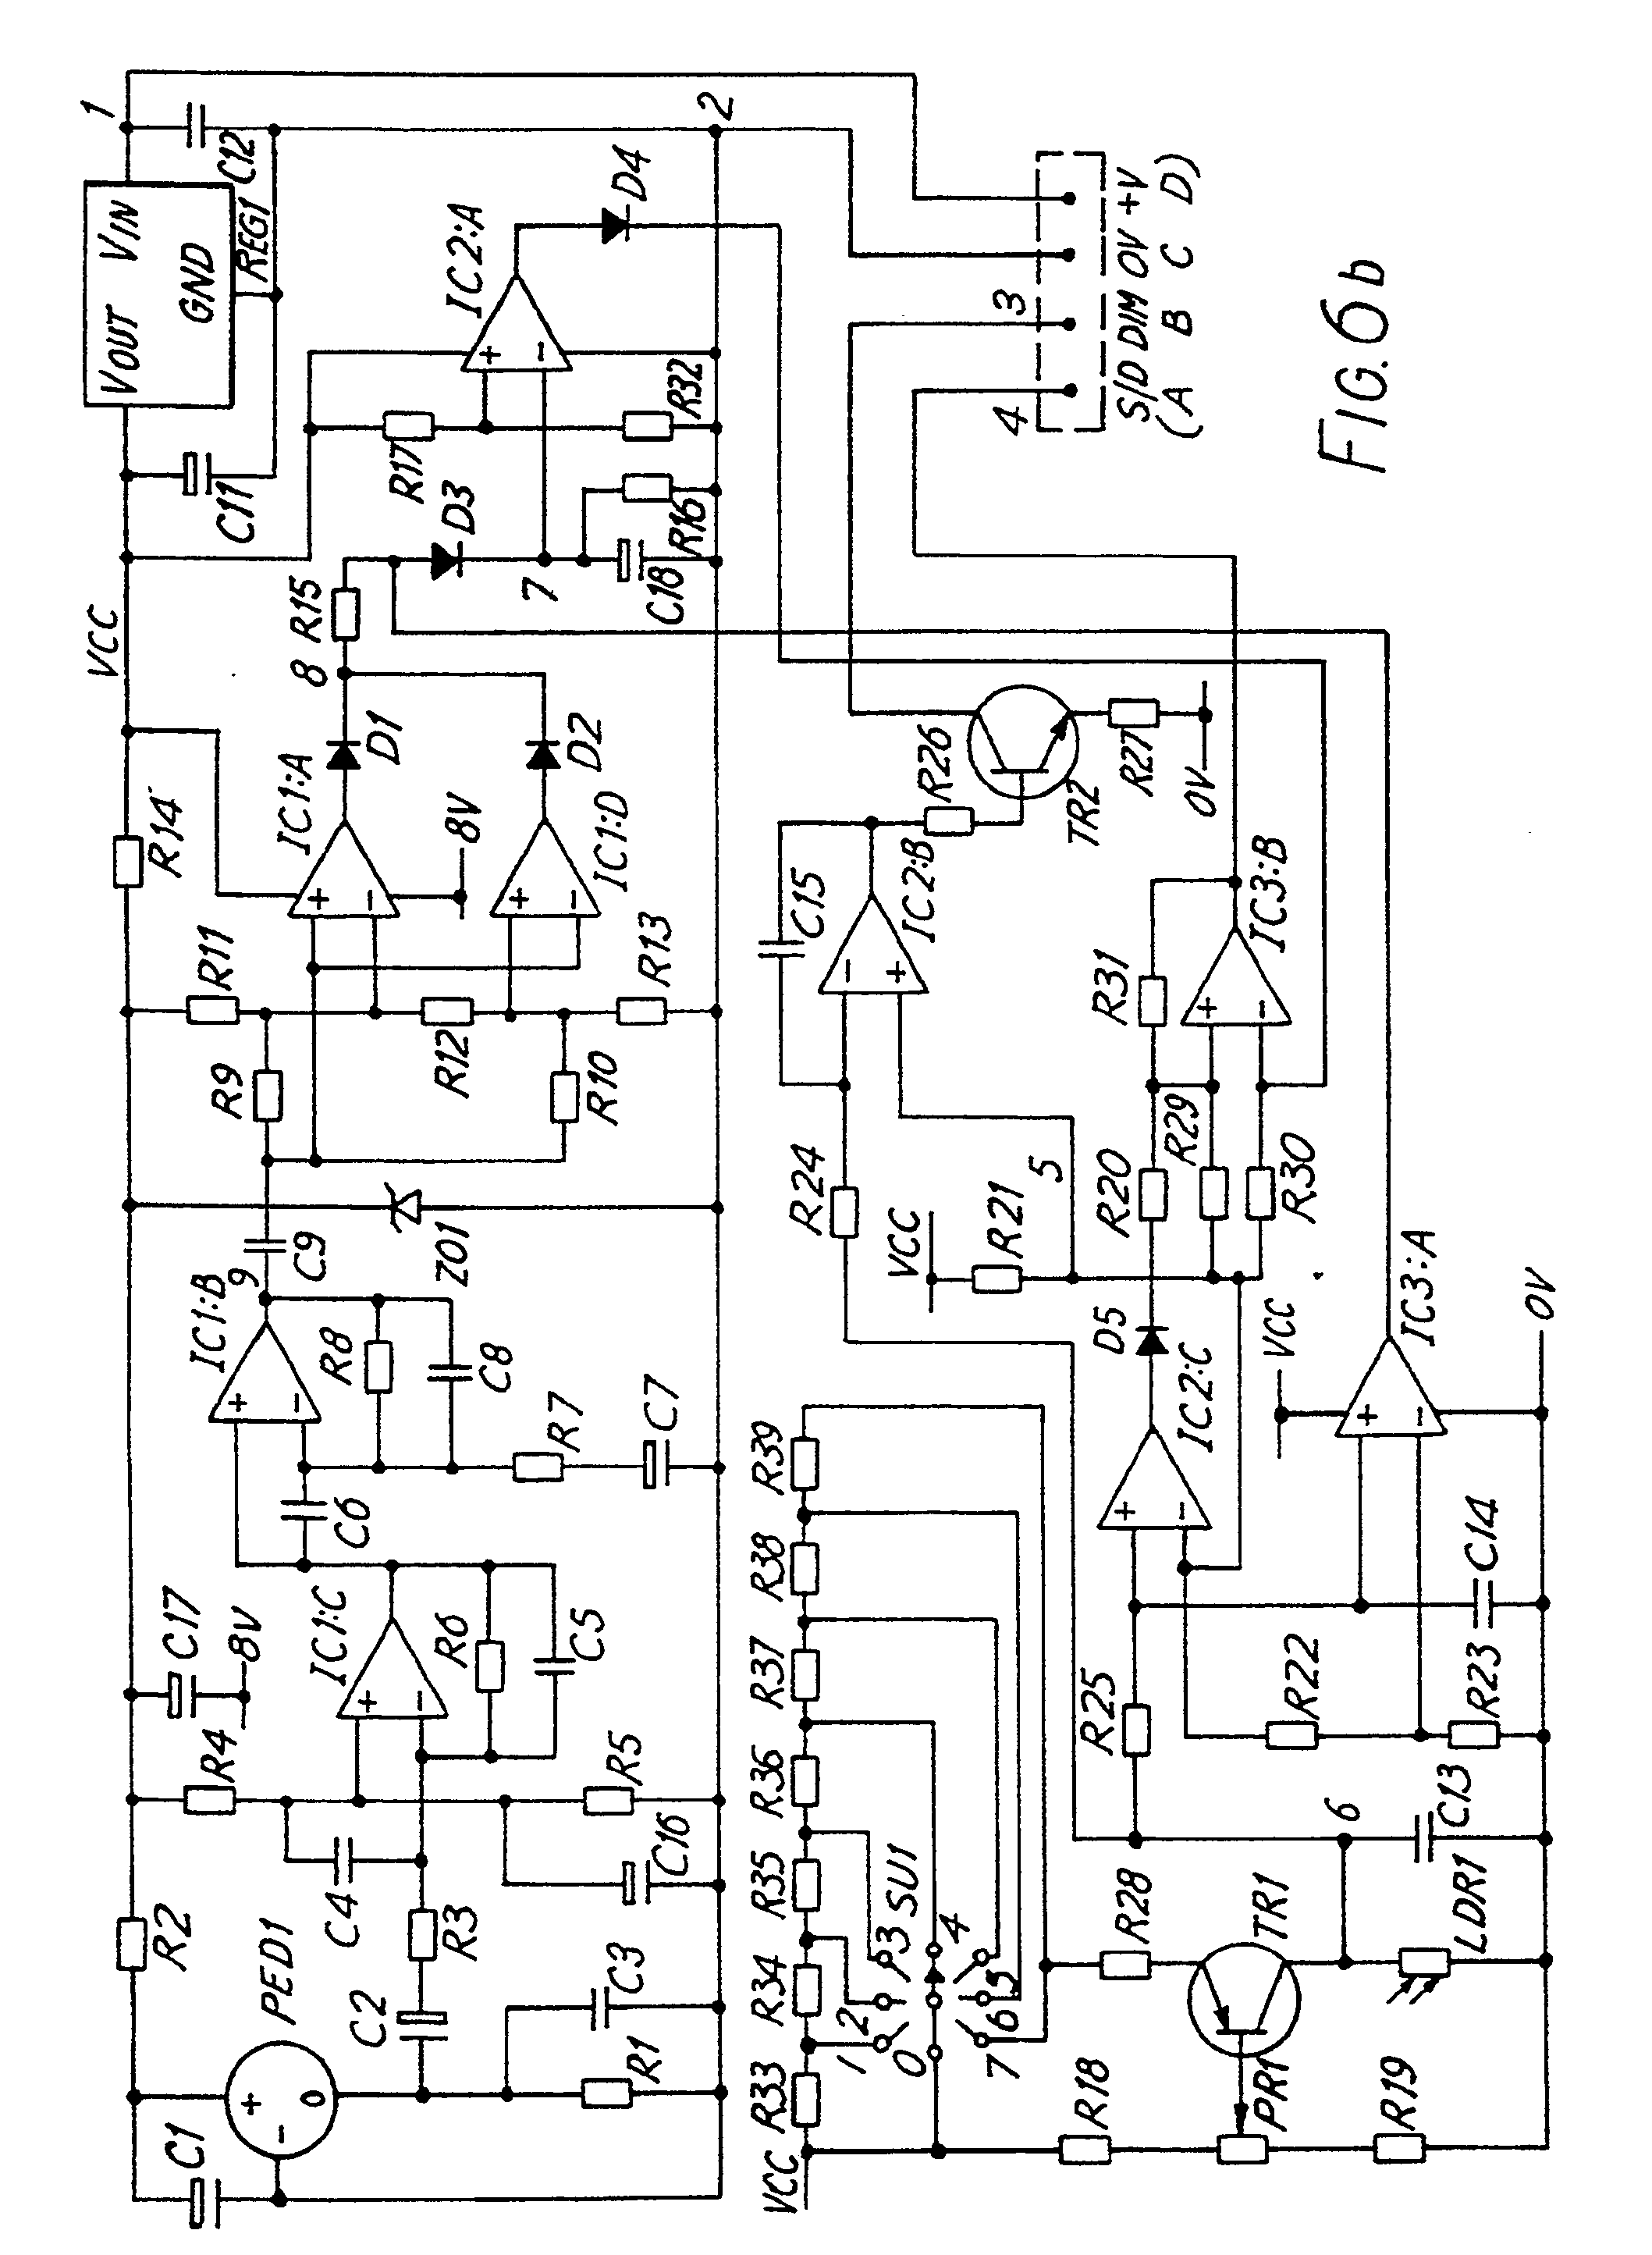 imgf0007 patent ep0447136a2 a method for automatic switching and control helvar ballast wiring diagram at soozxer.org